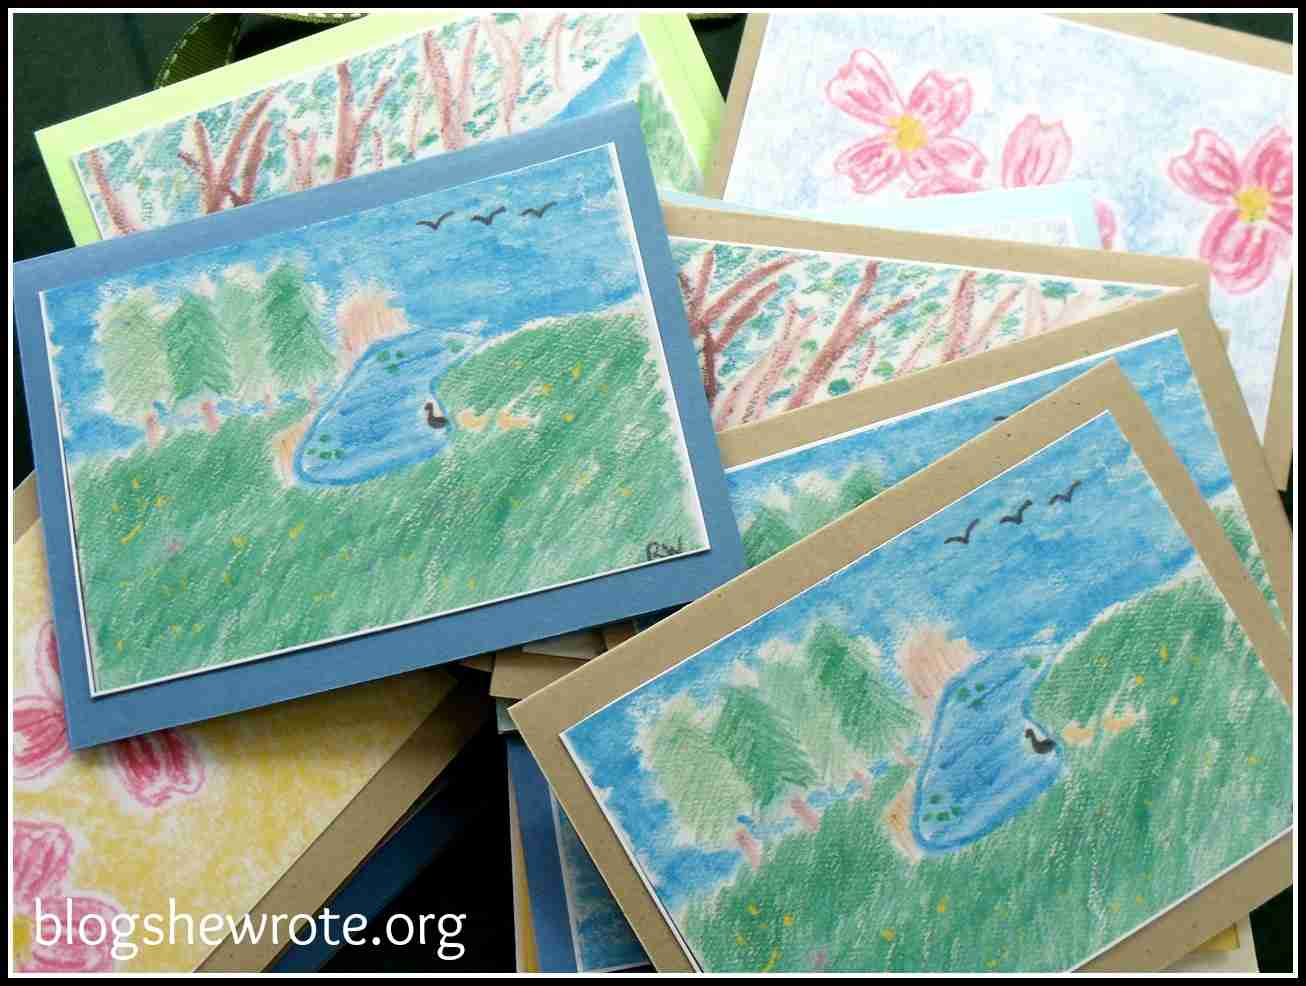 Blog, She Wrote: Resources for a Nature Study Family